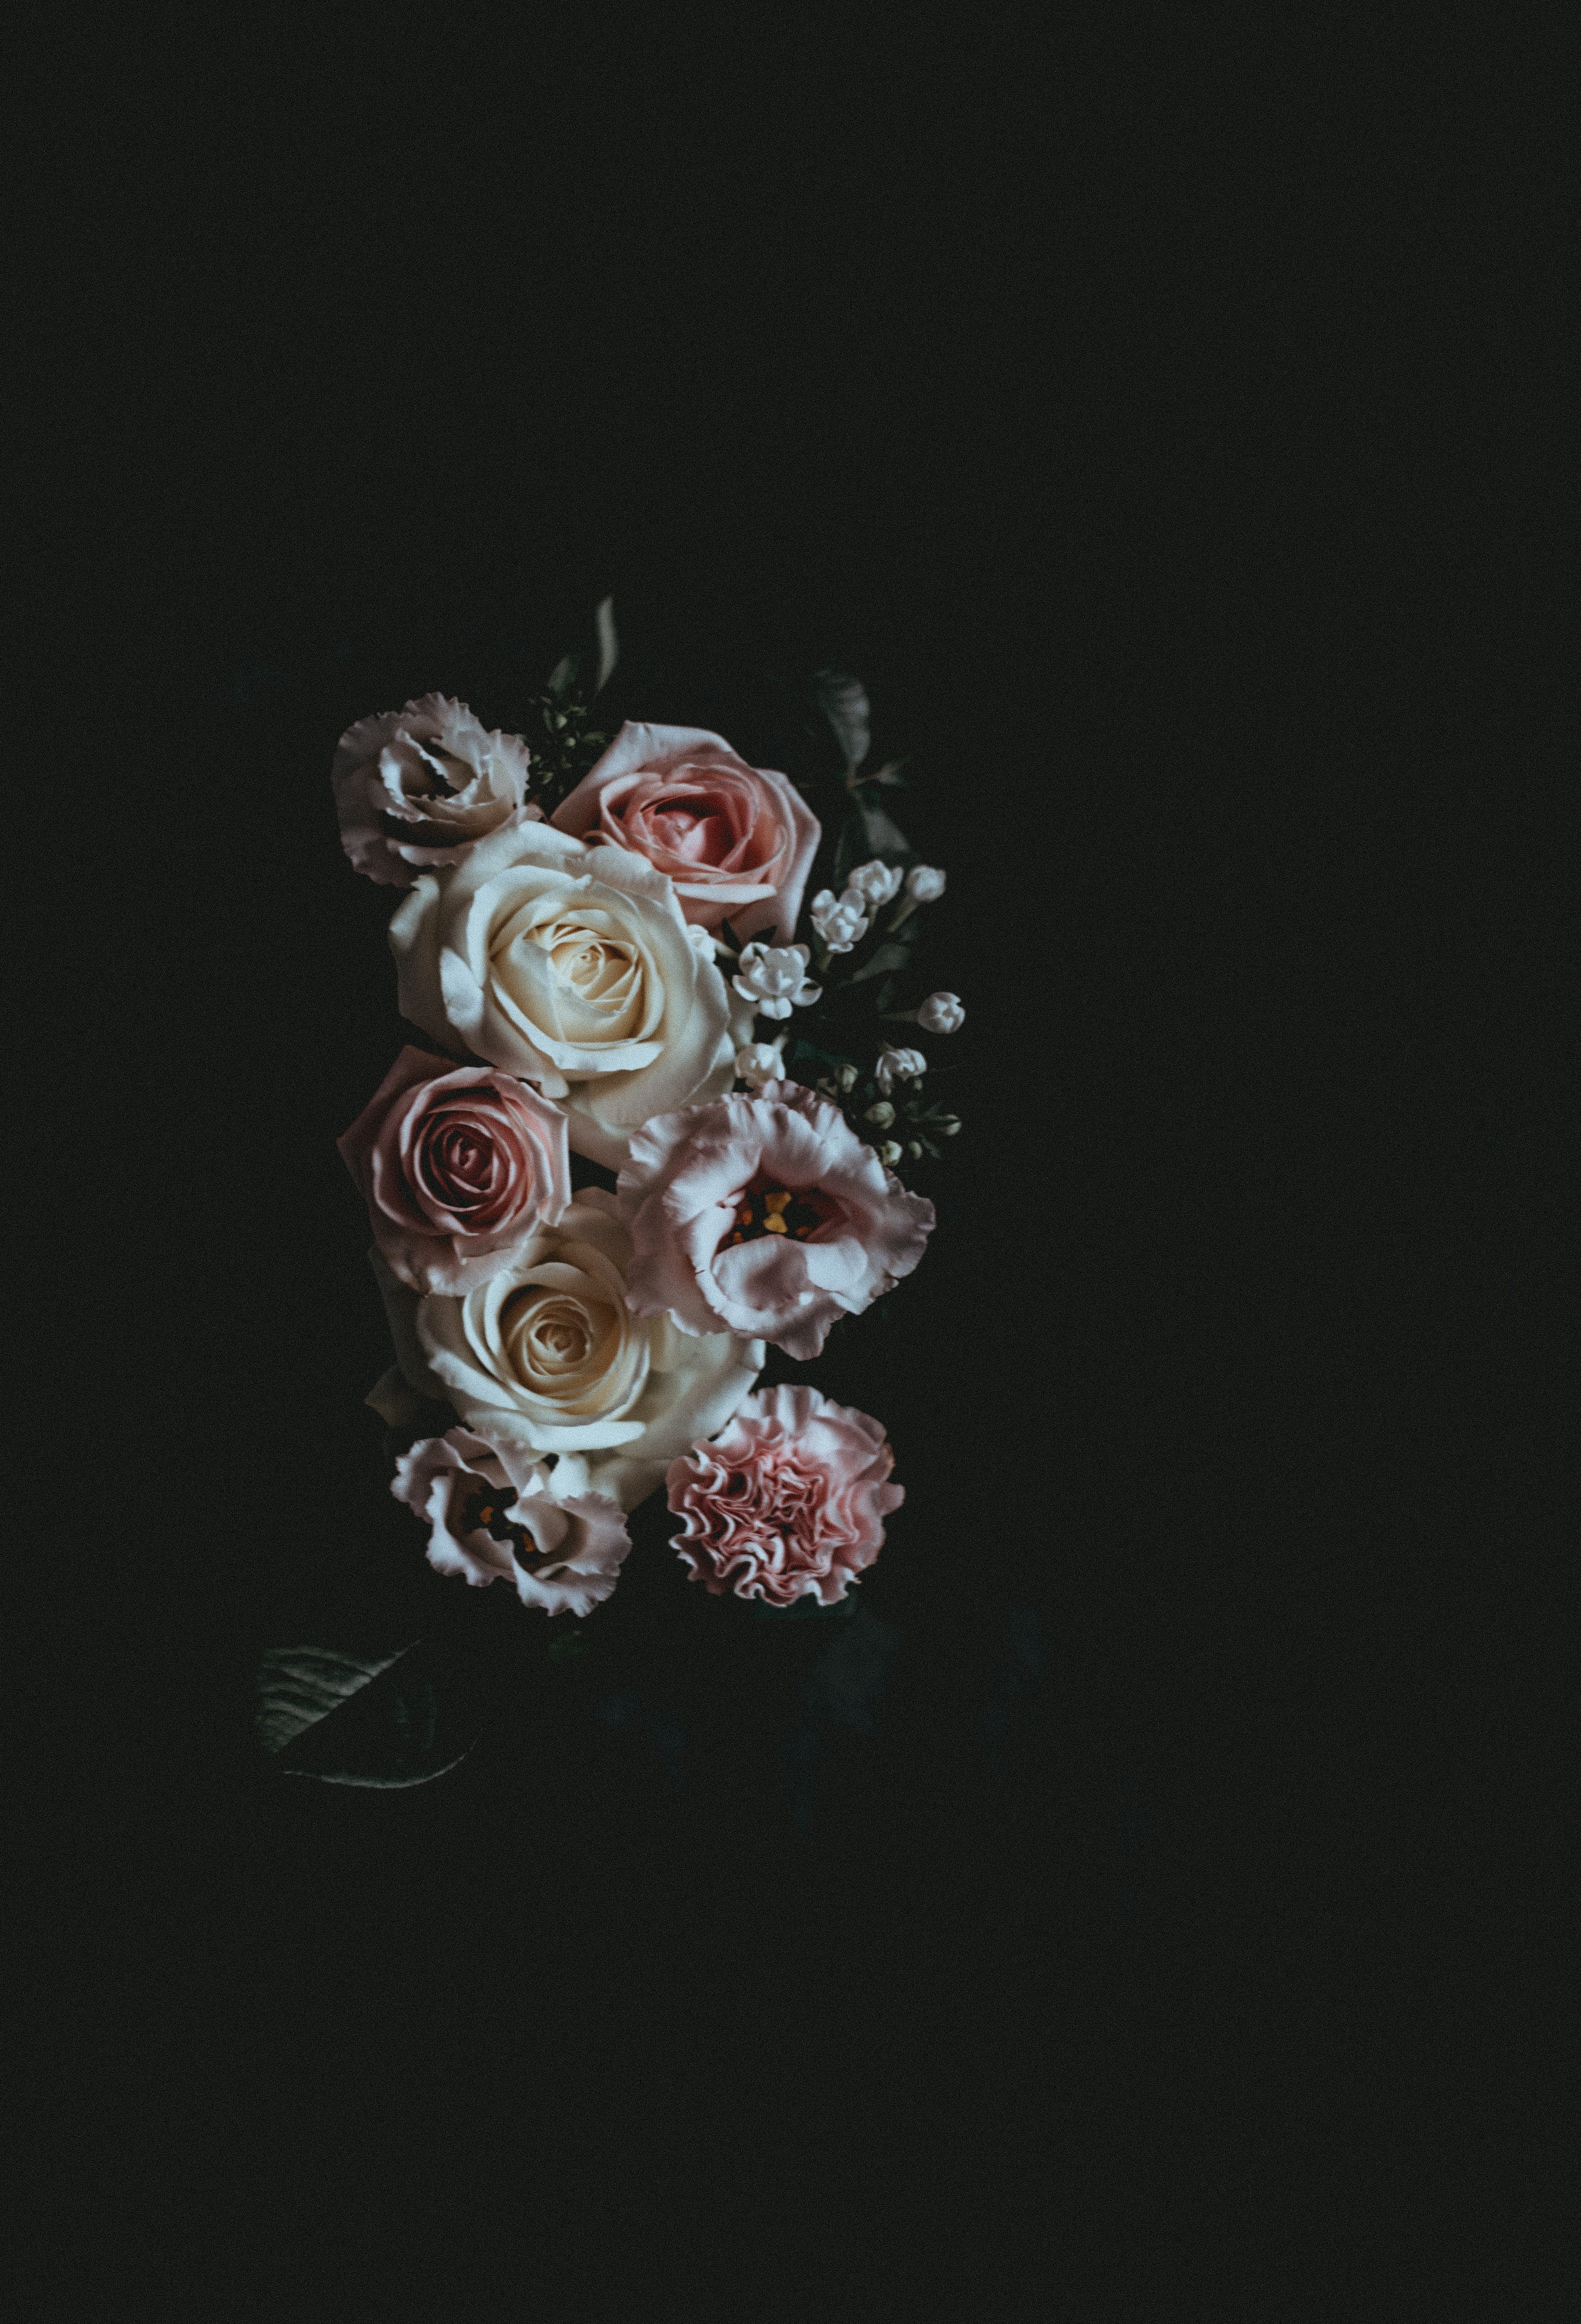 A dark photo of a flower arrangement consisting of pink and white roses